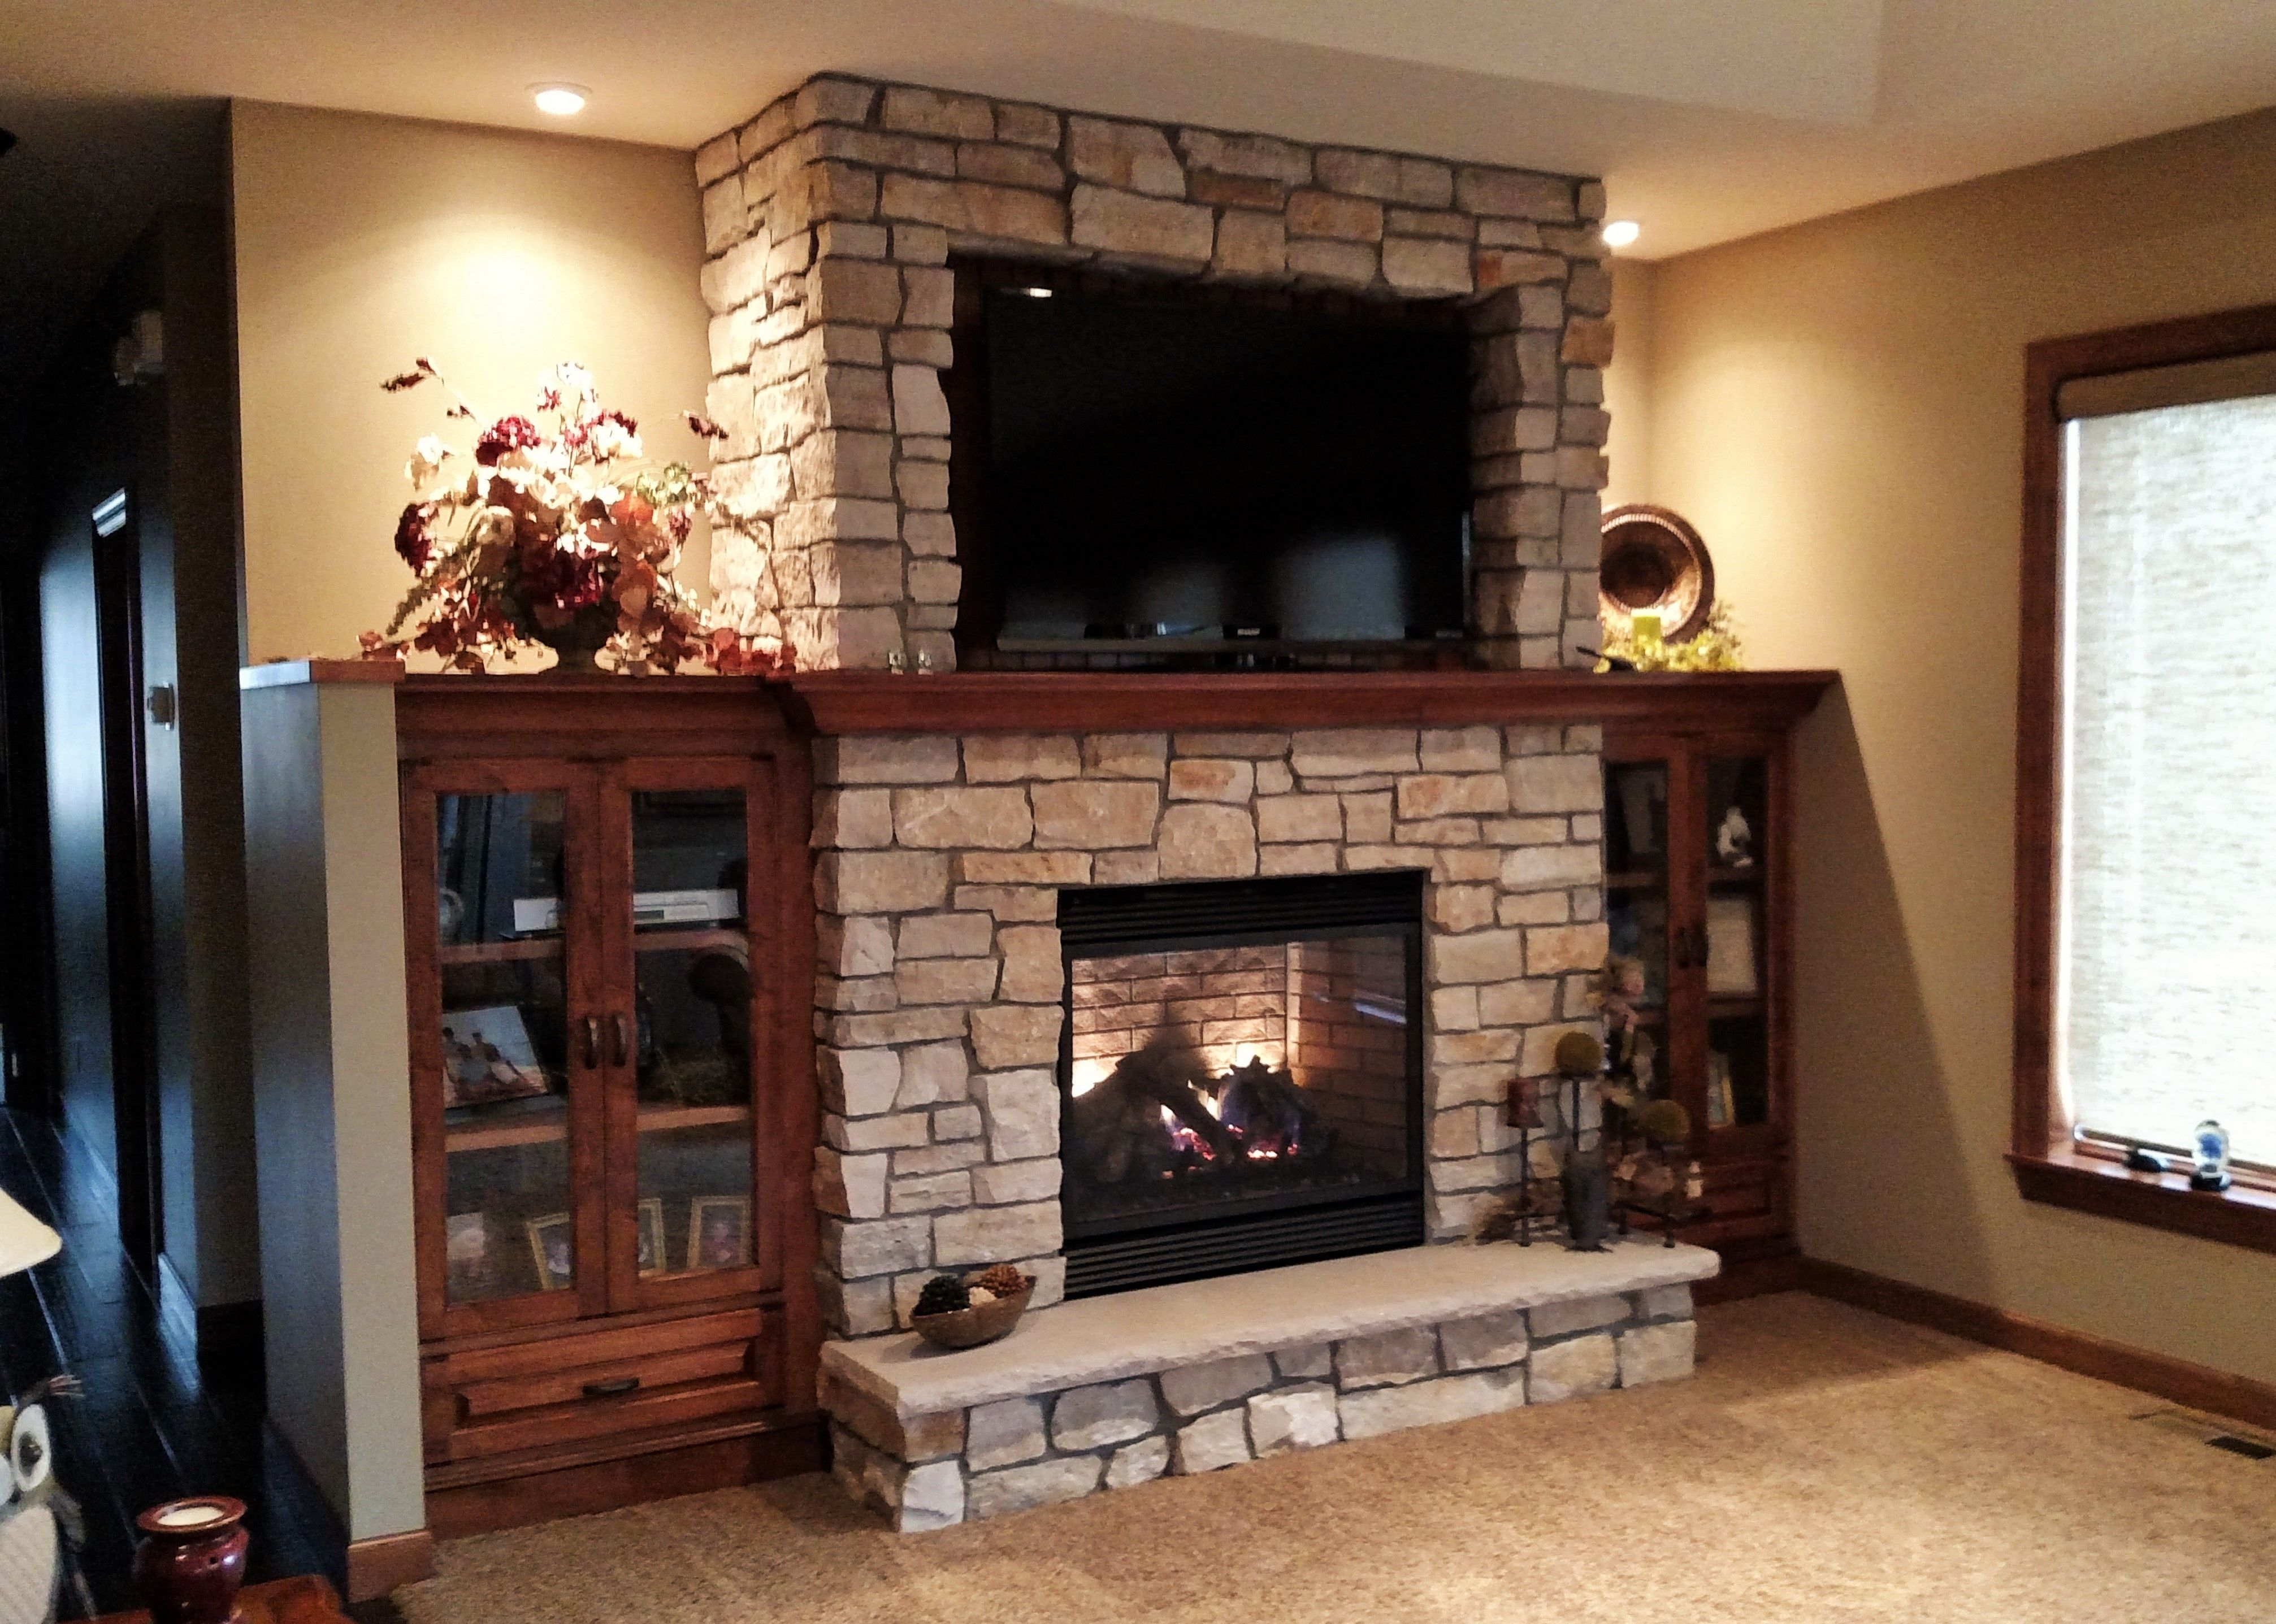 New fireplace with tv eclectic family room minneapolis - Where To Put The Tv Here We Created A Nook In The Stonework And Backed